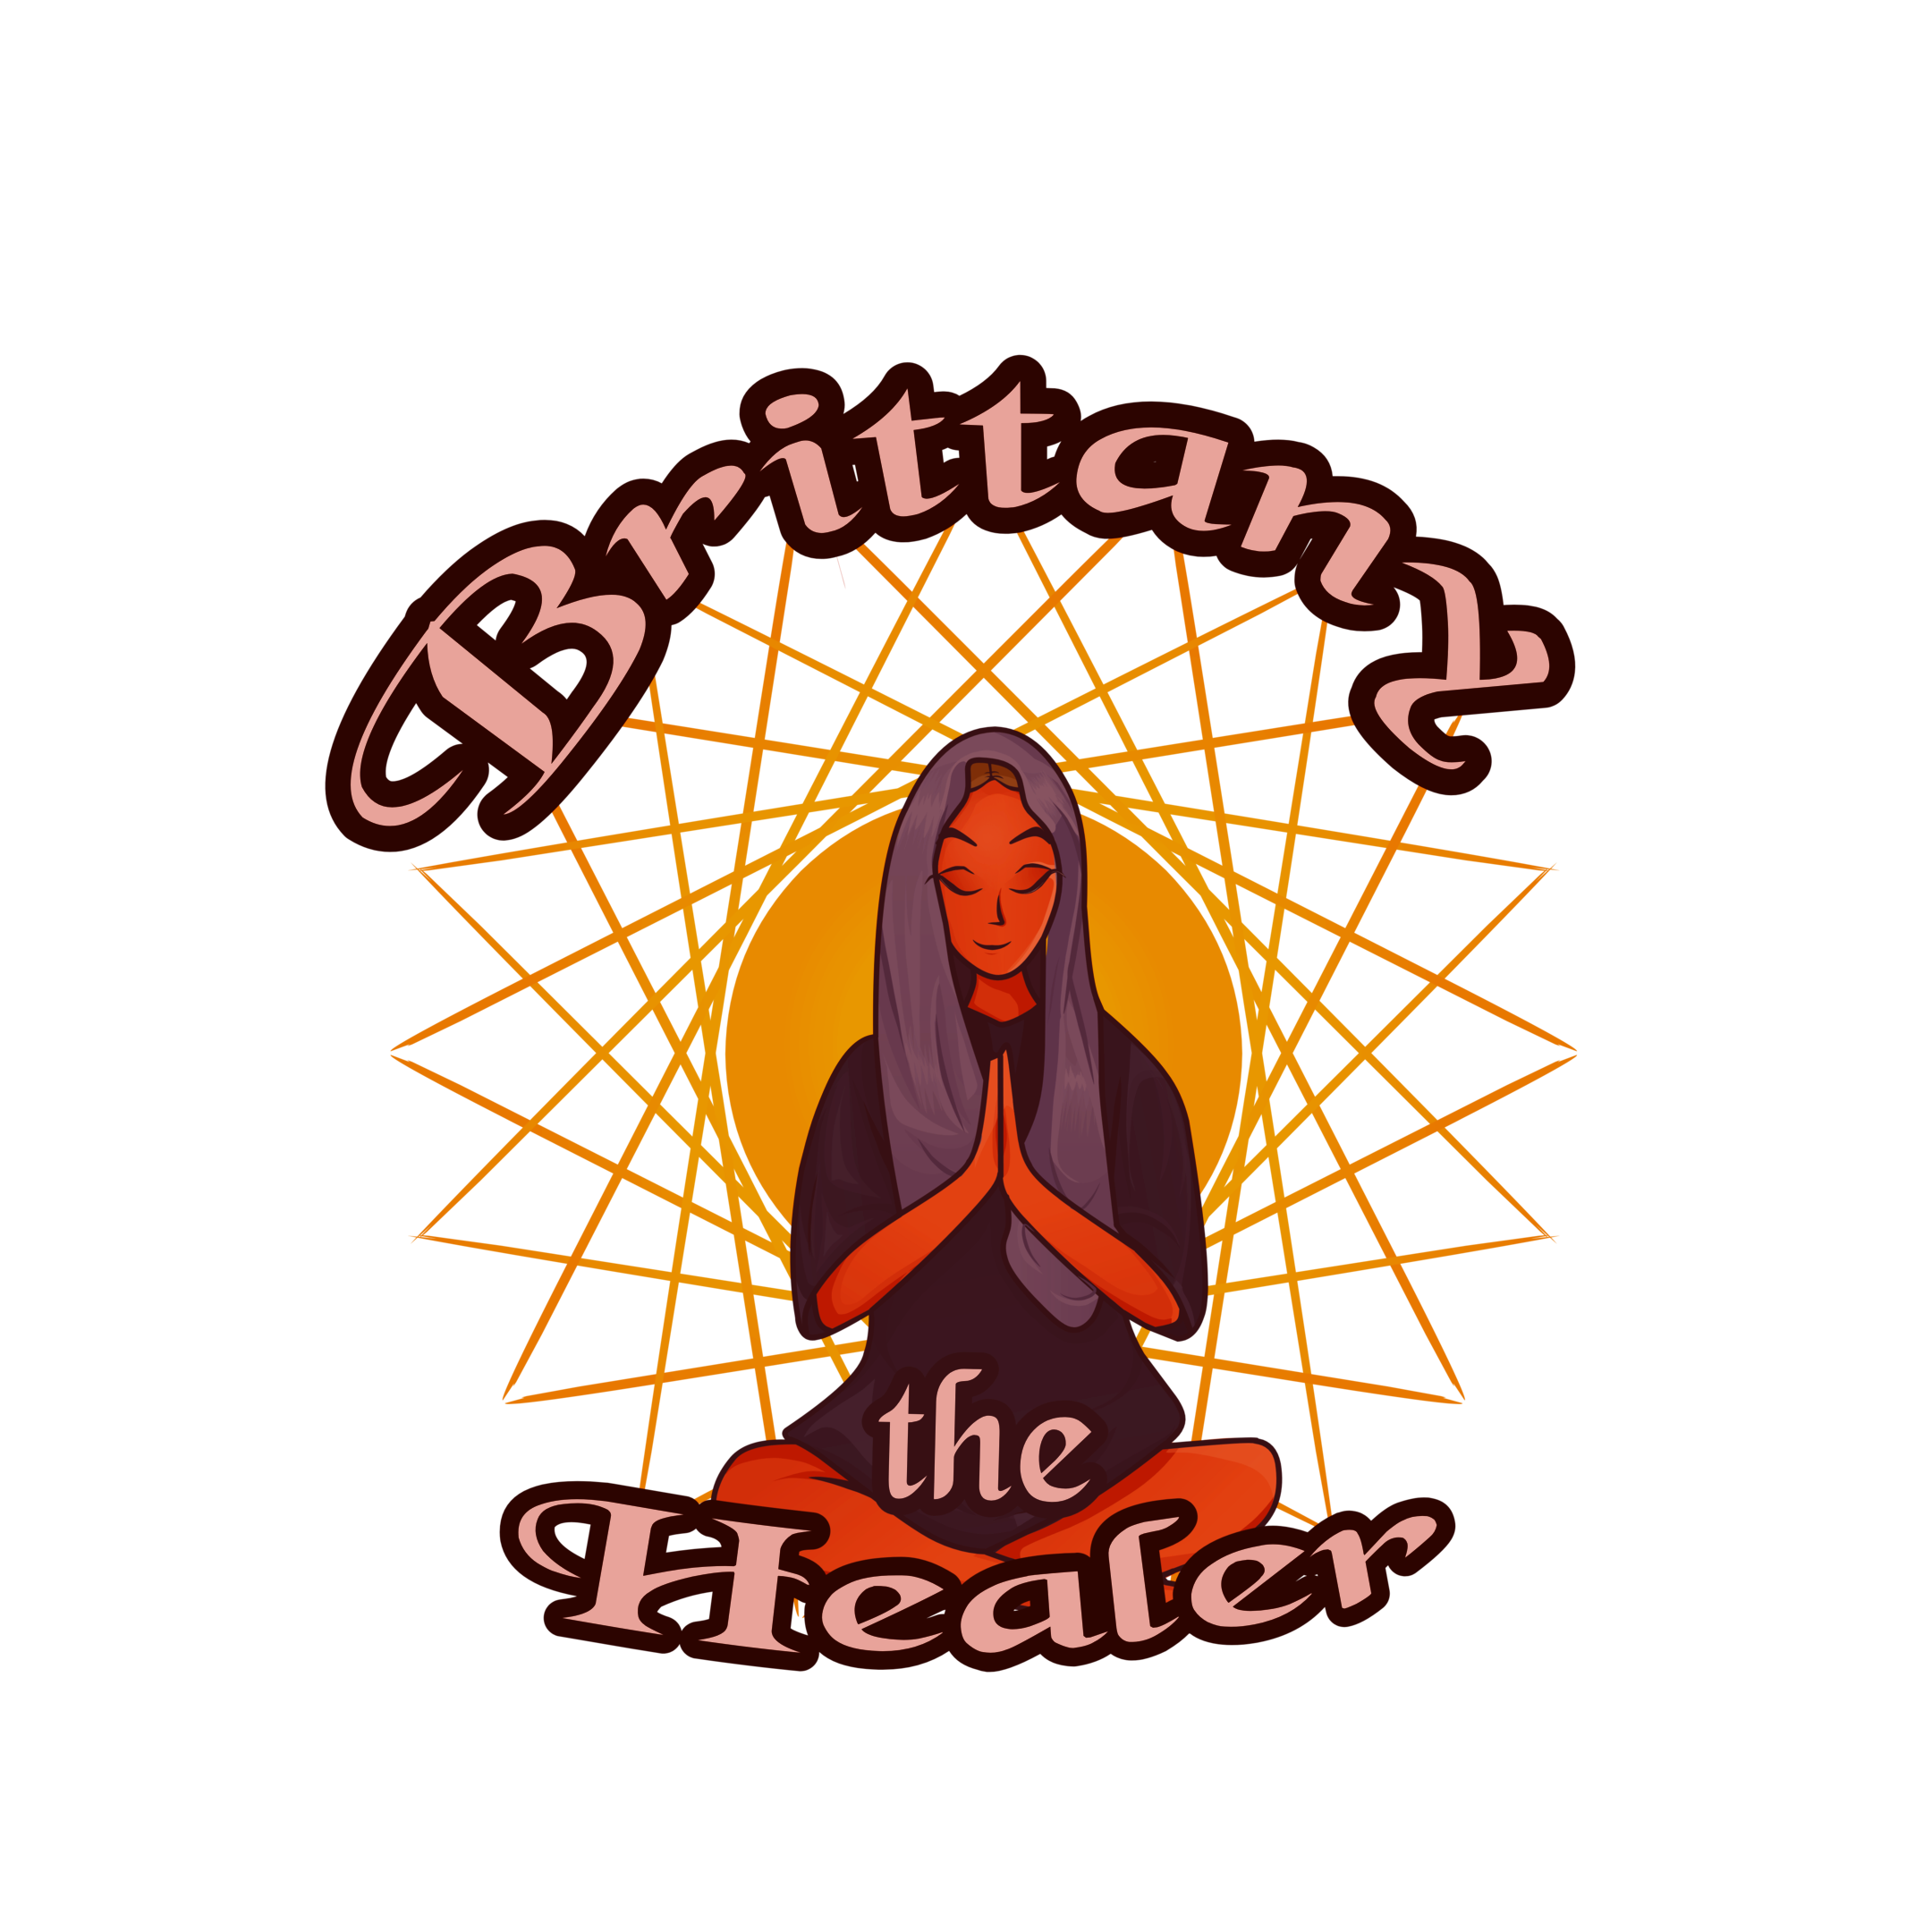 Brittany The Healer